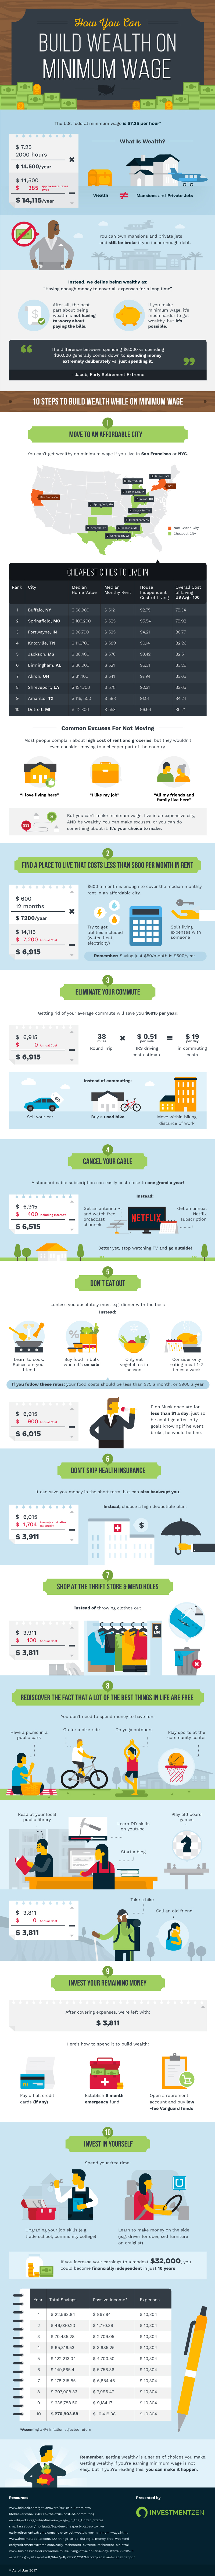 How You Can Build Wealth on Minimum Wage #infographic